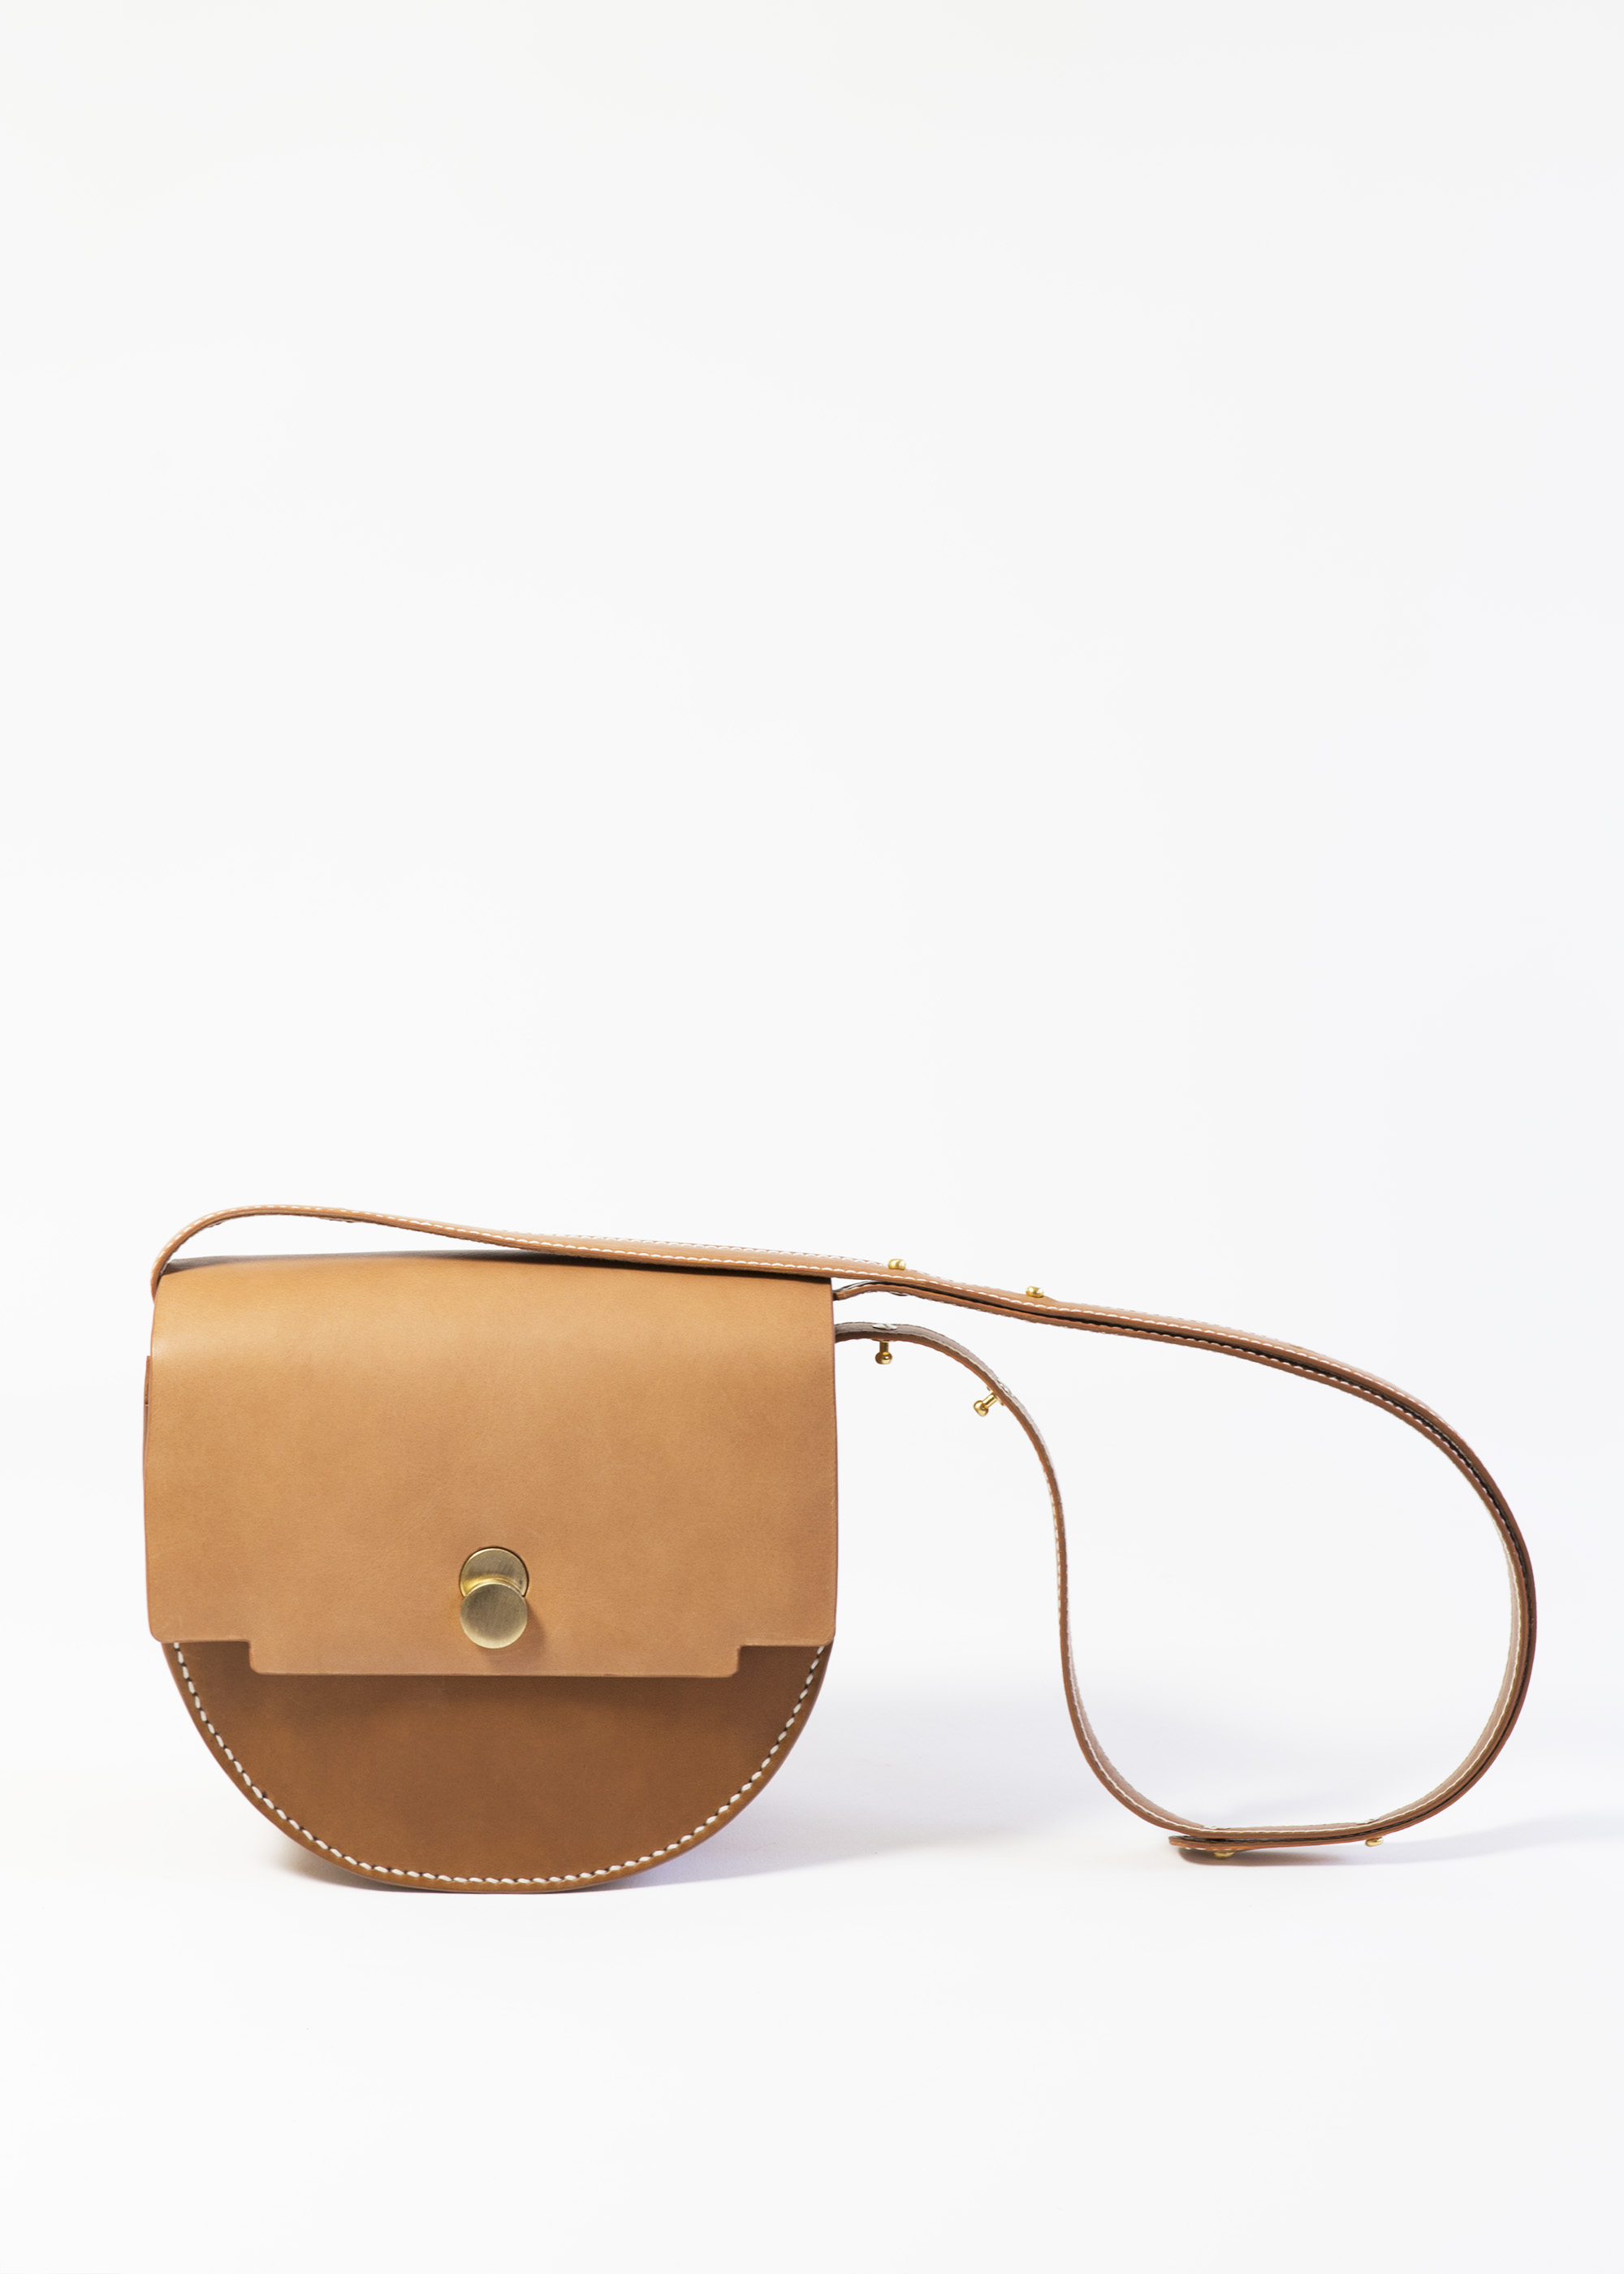 Mita Saddle bag Tan by LAHARA on curated-crowd.com